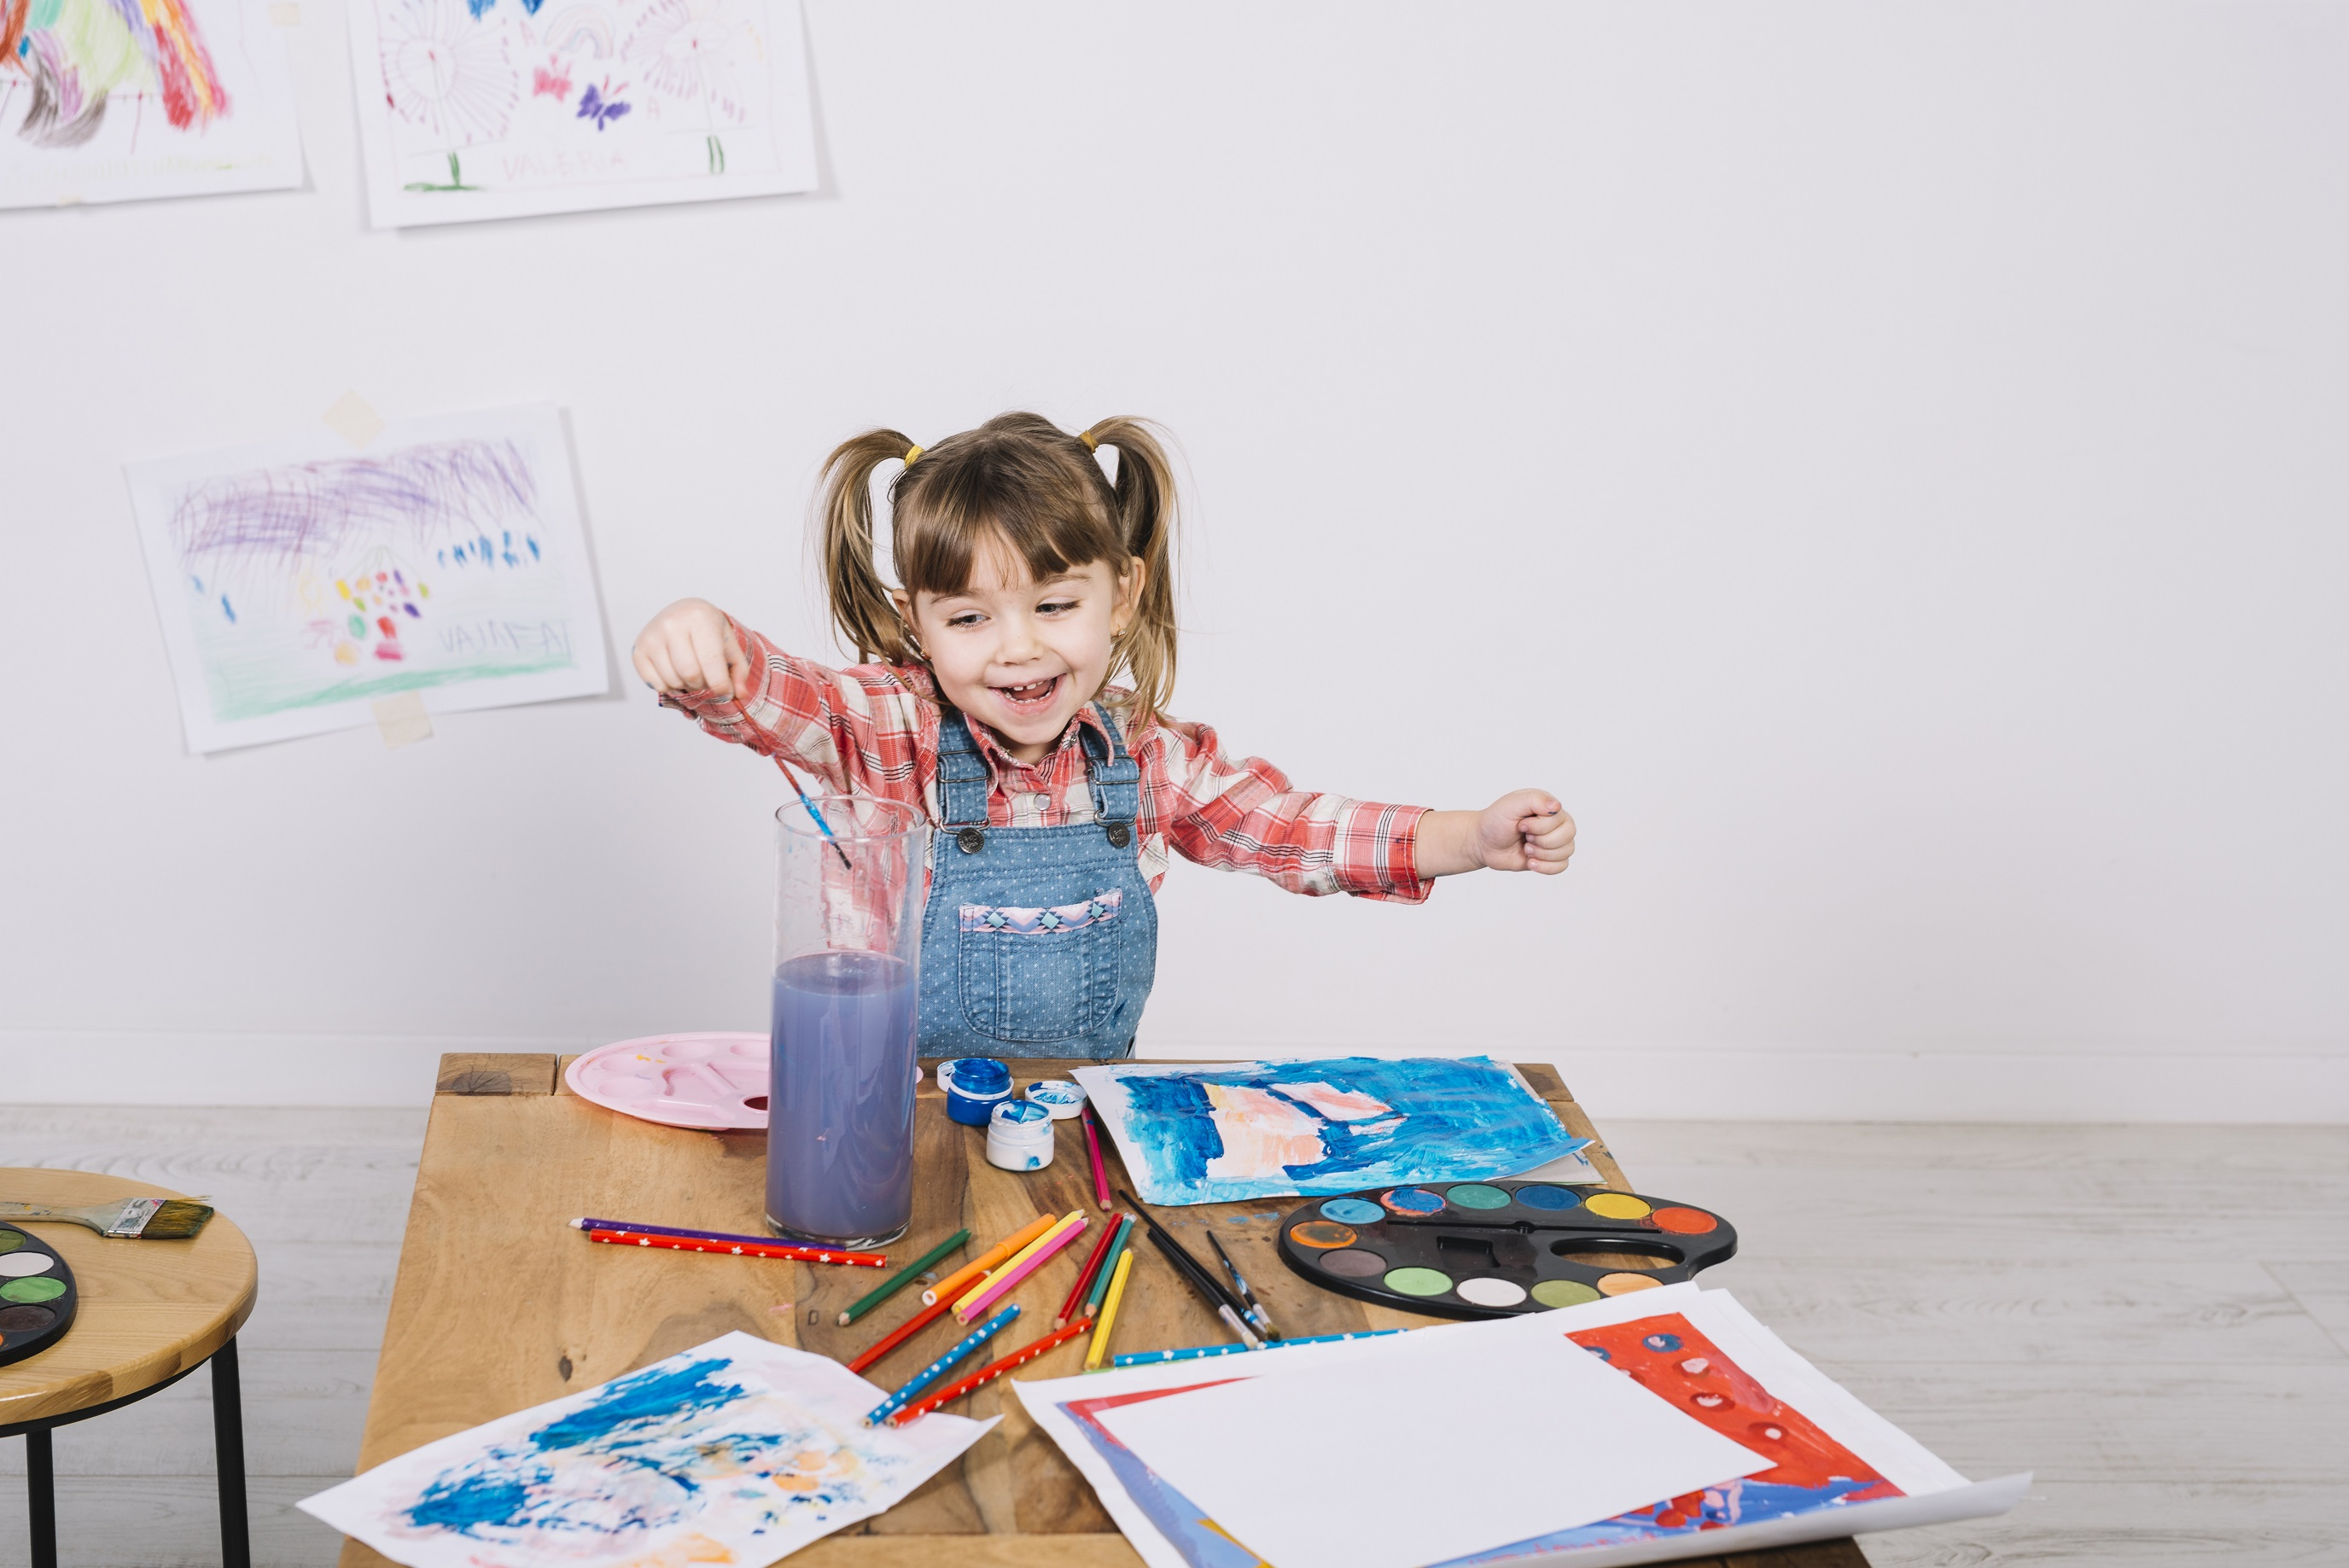 Girl happily painting using paintbrush and watercolour